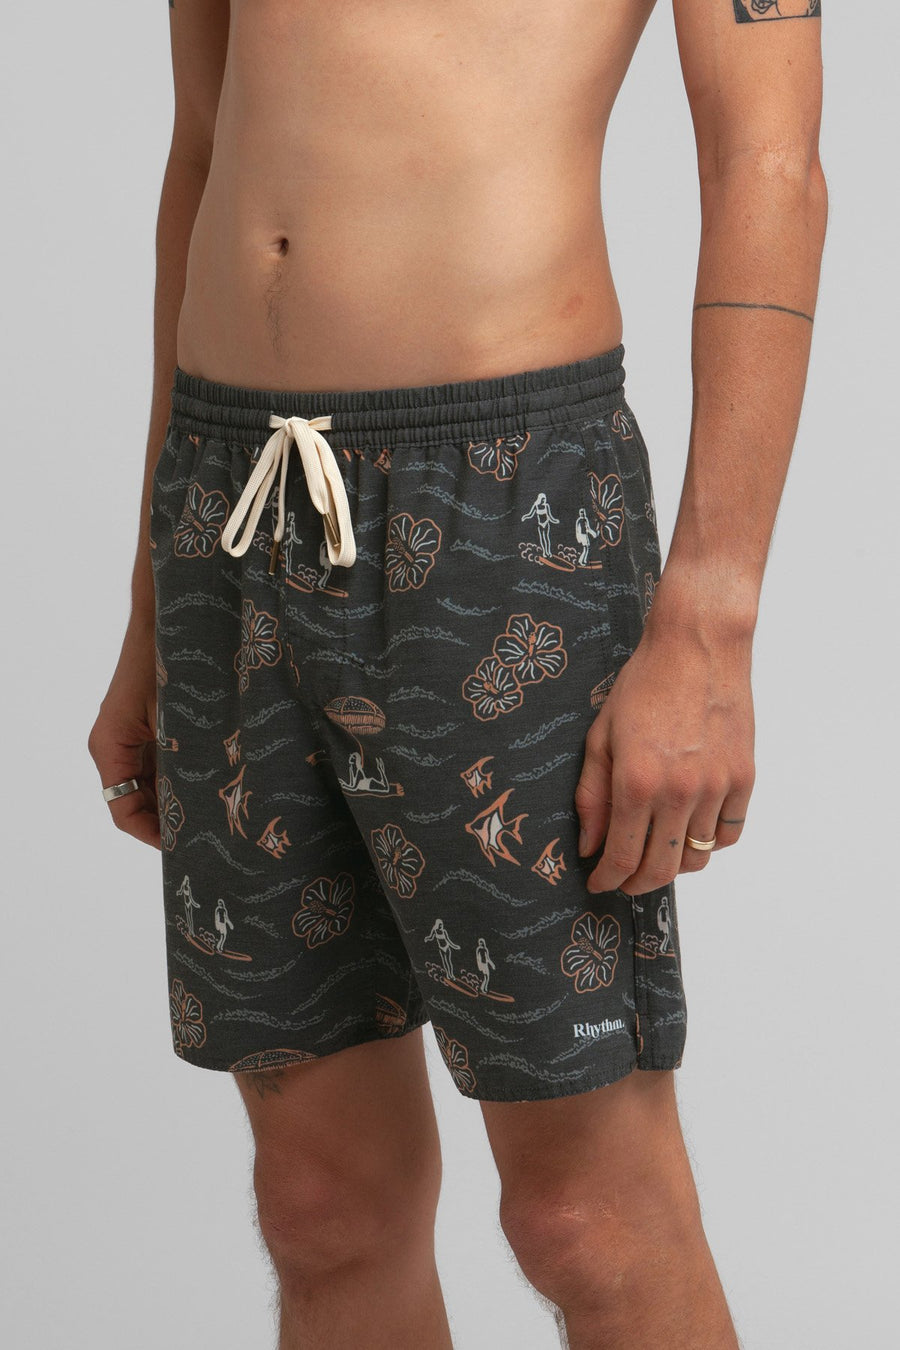 RHYTHM Weekender Beach Short Vintage Black MENS APPAREL - Men's Boardshorts Rhythm